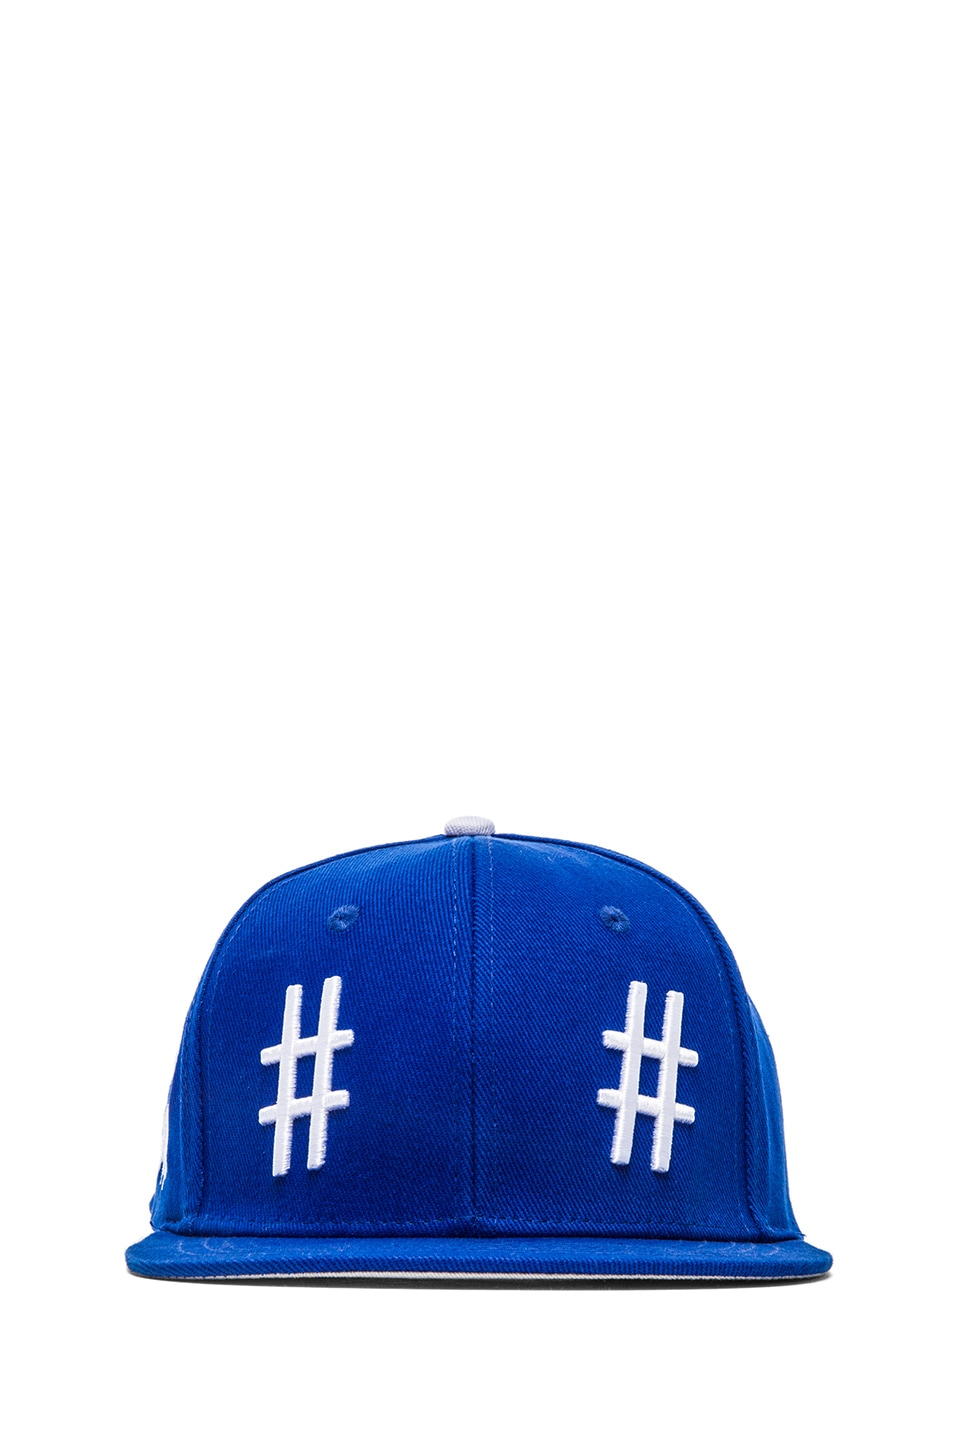 Been Trill Team Hat in Blue and White